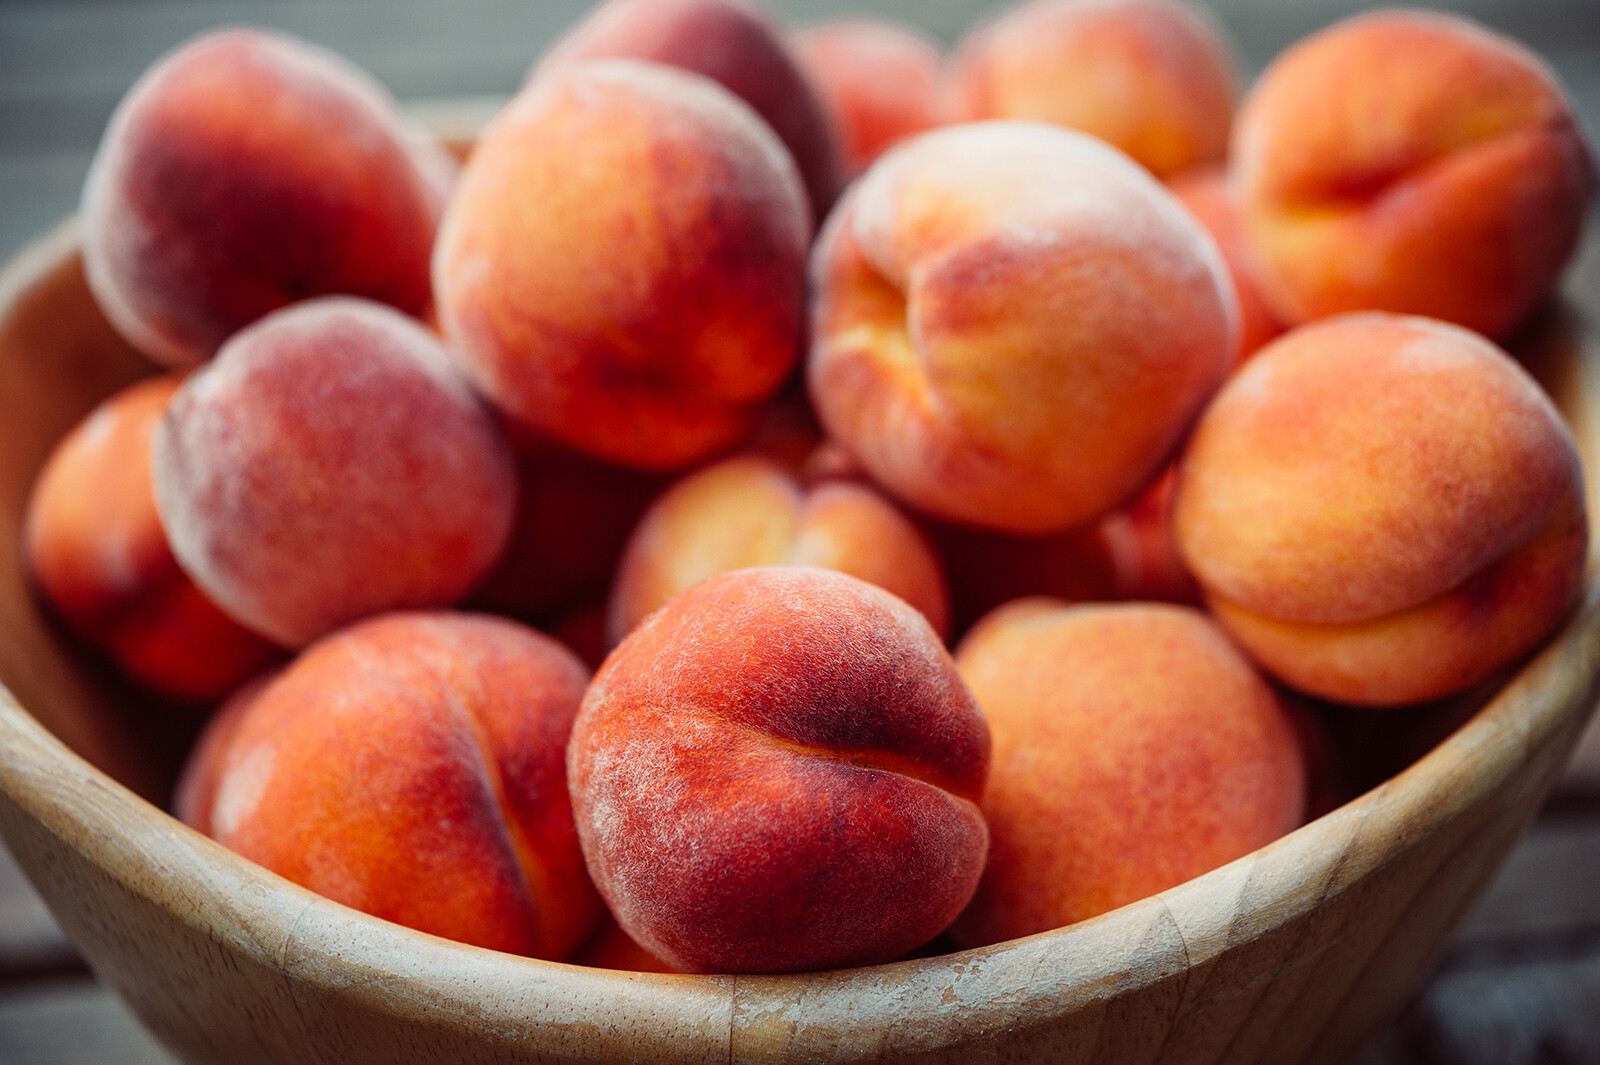 <i>Shutterstock</i><br/>Peaches are a great way to eat vitamins like A and C while enjoying a sweet treat this summer.